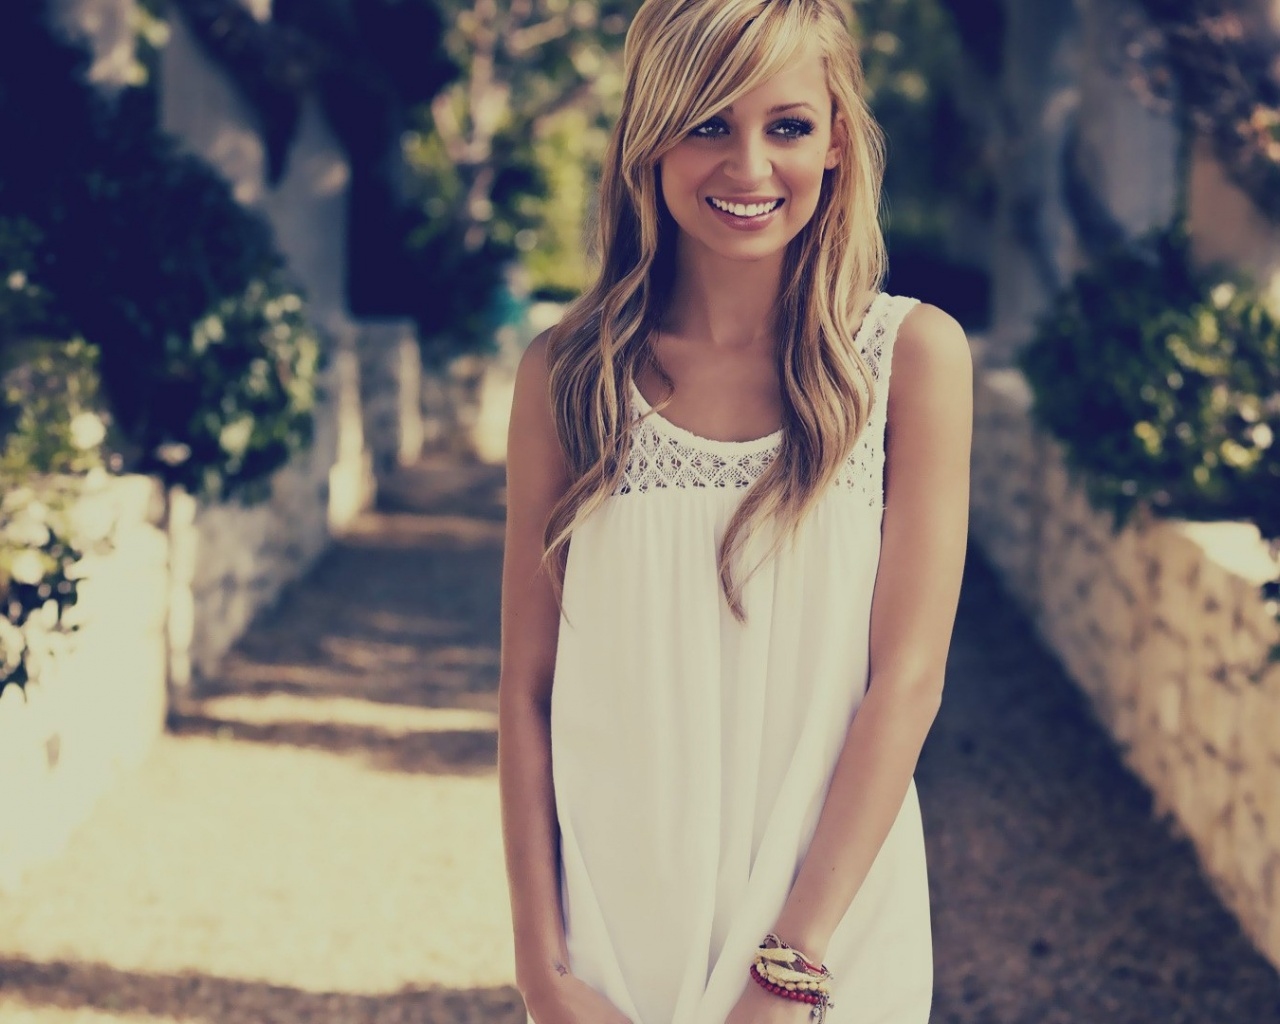 Latest Wallpaper Girl Tv Shows Post Beautiful And Blonde Nicole Ritchie The